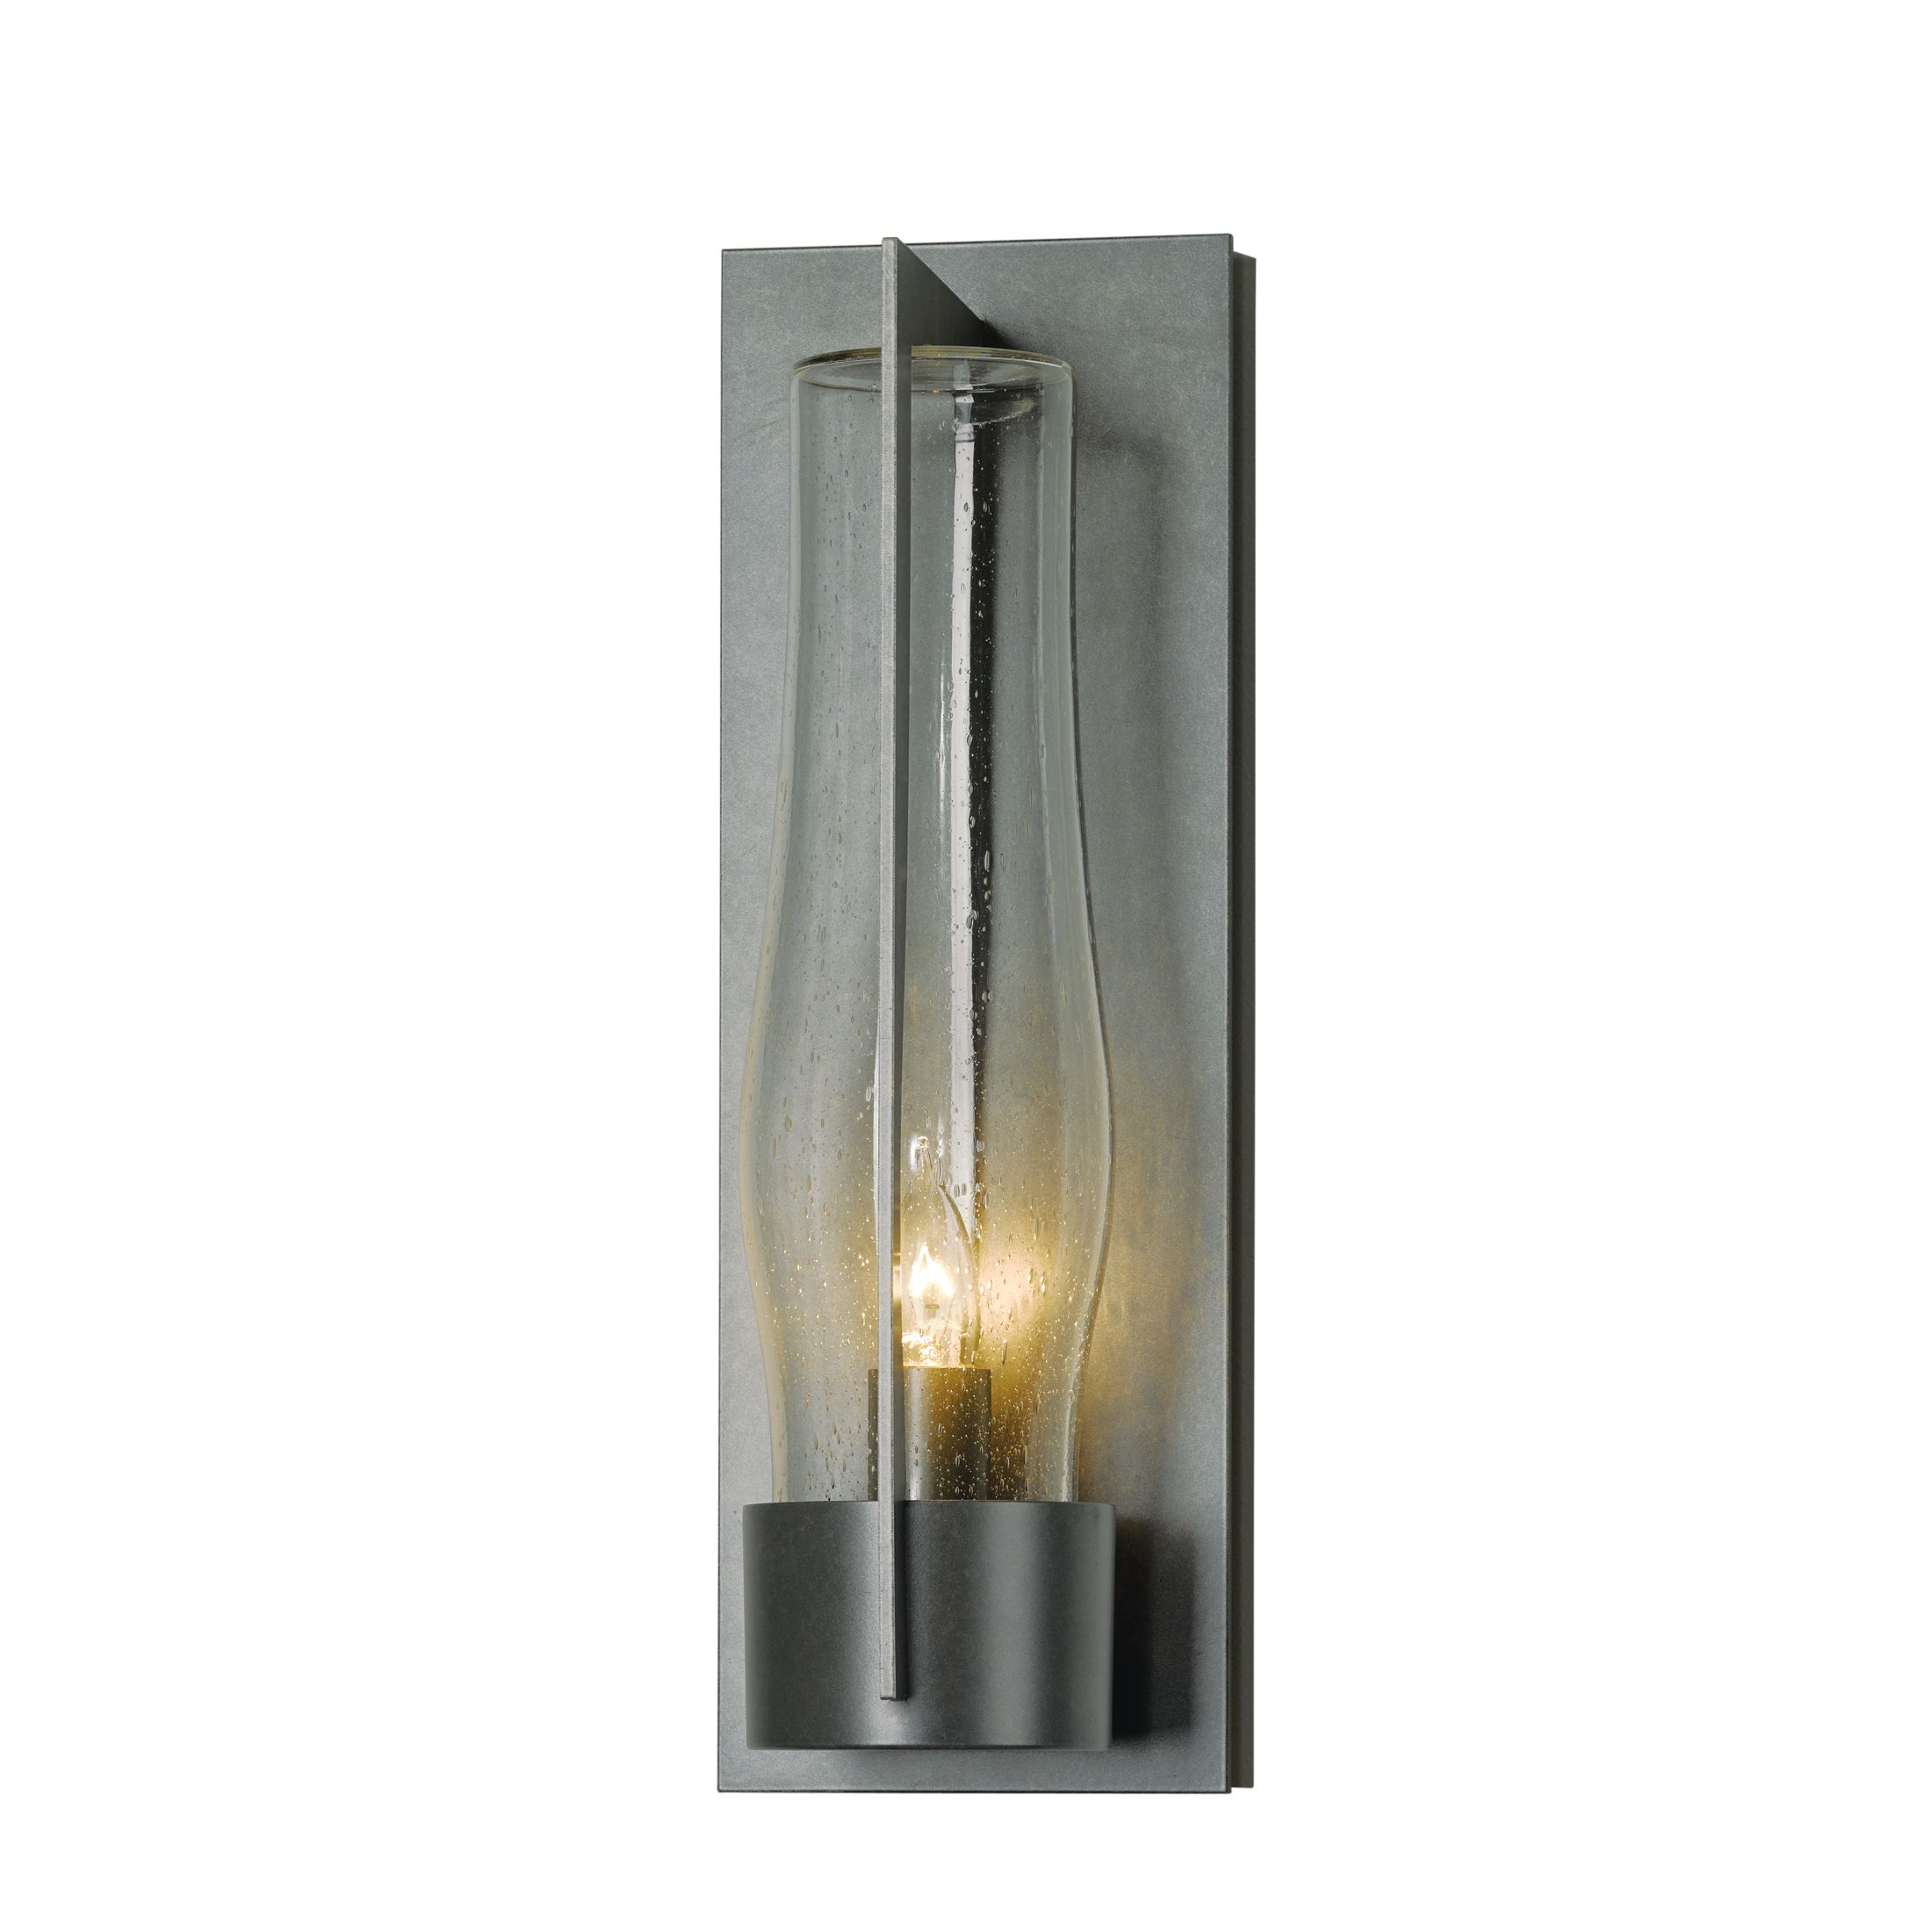 Thumbnail for Harbor Large Outdoor Sconce